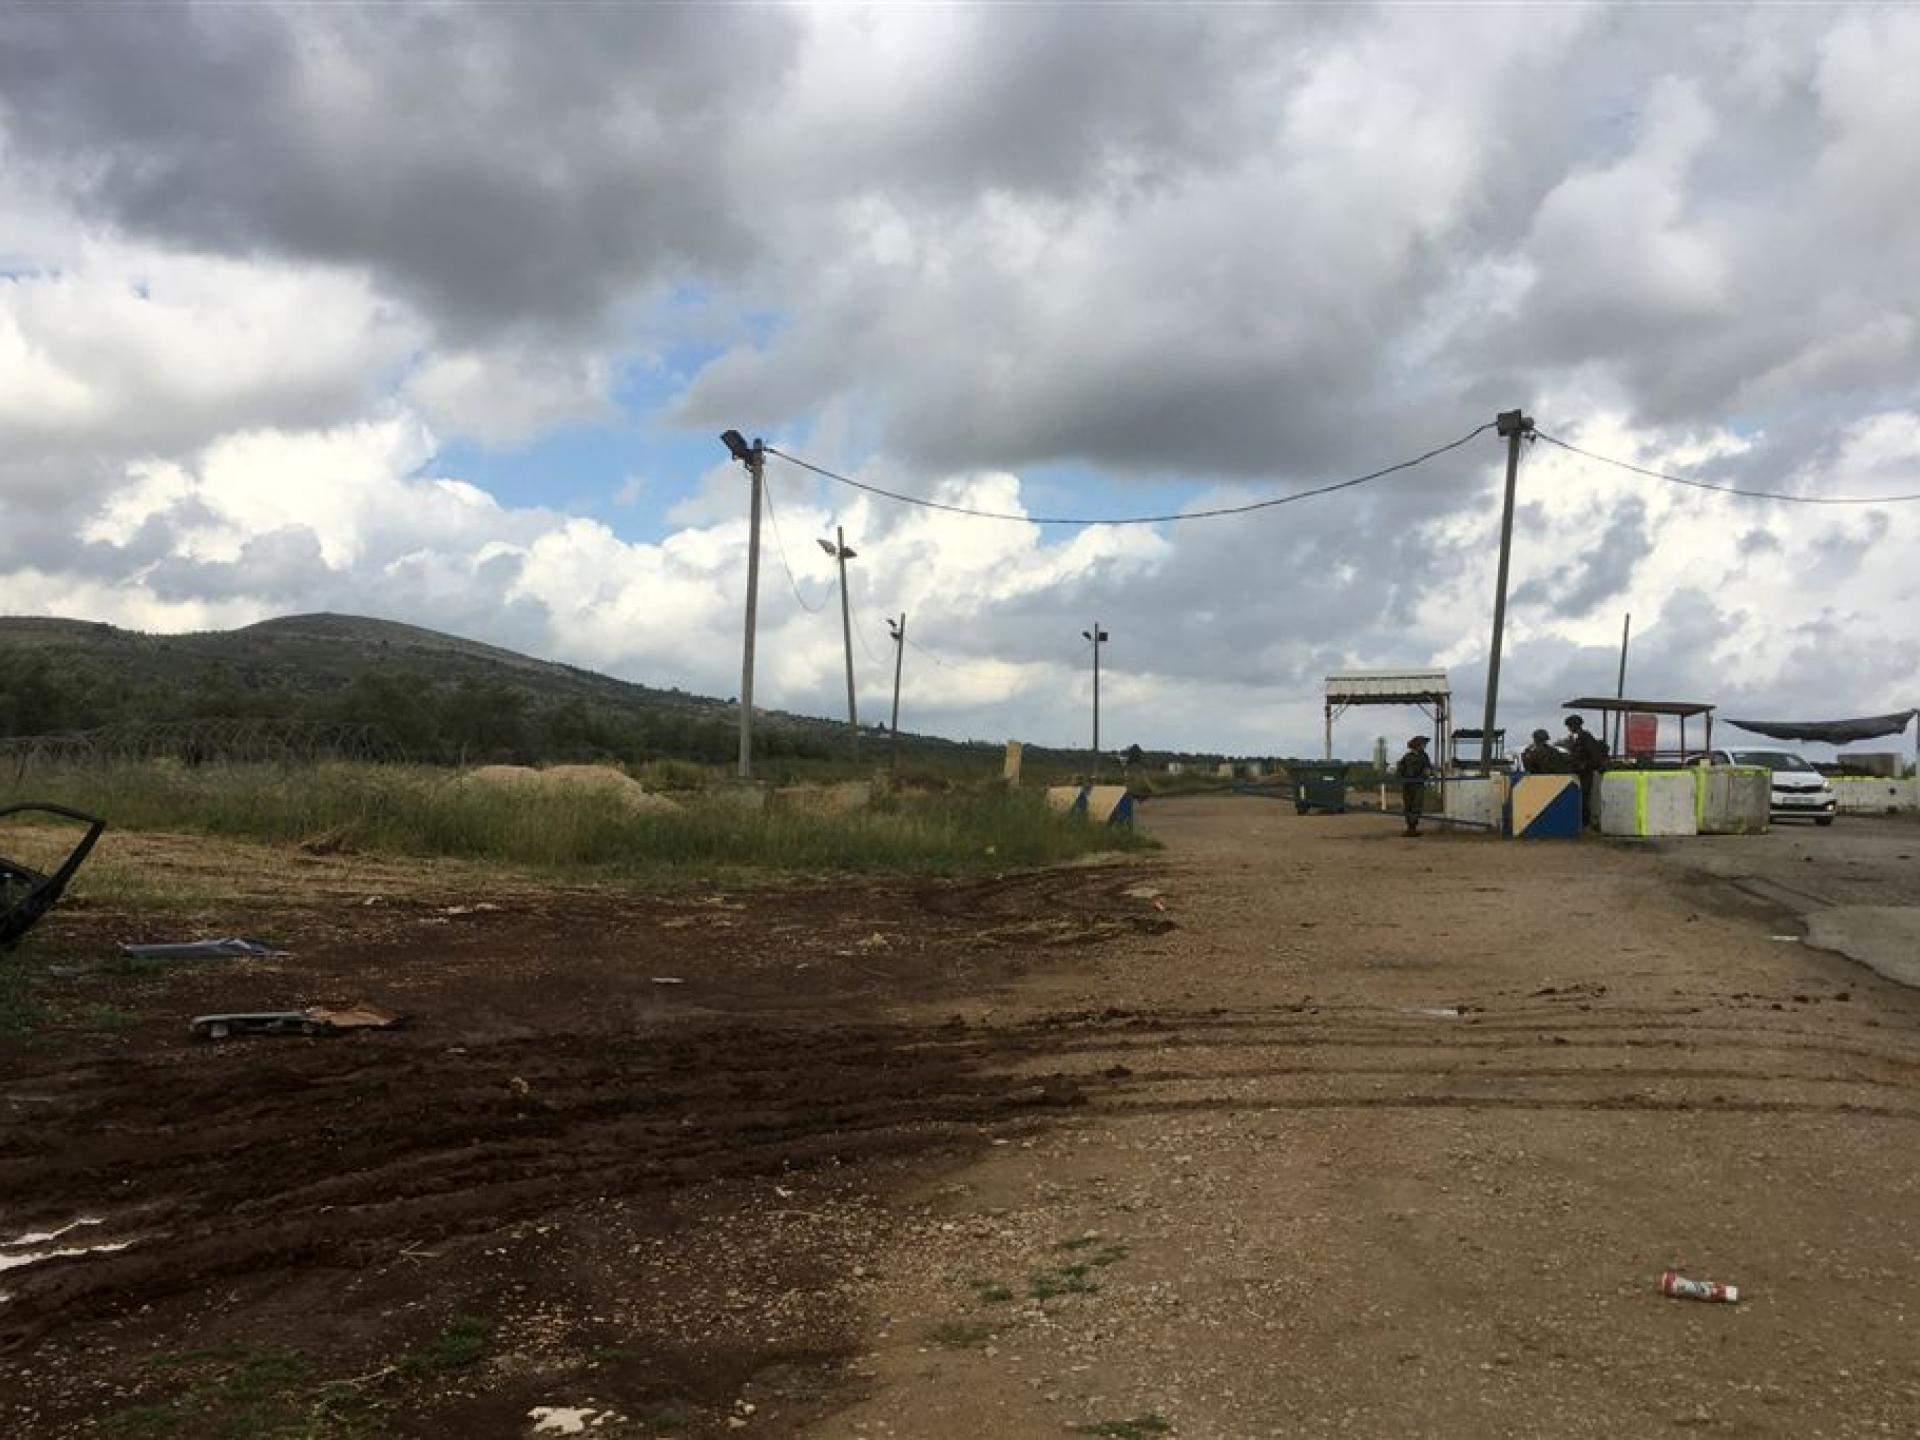 Yaabed-Dotan checkpoint: manned and shielded